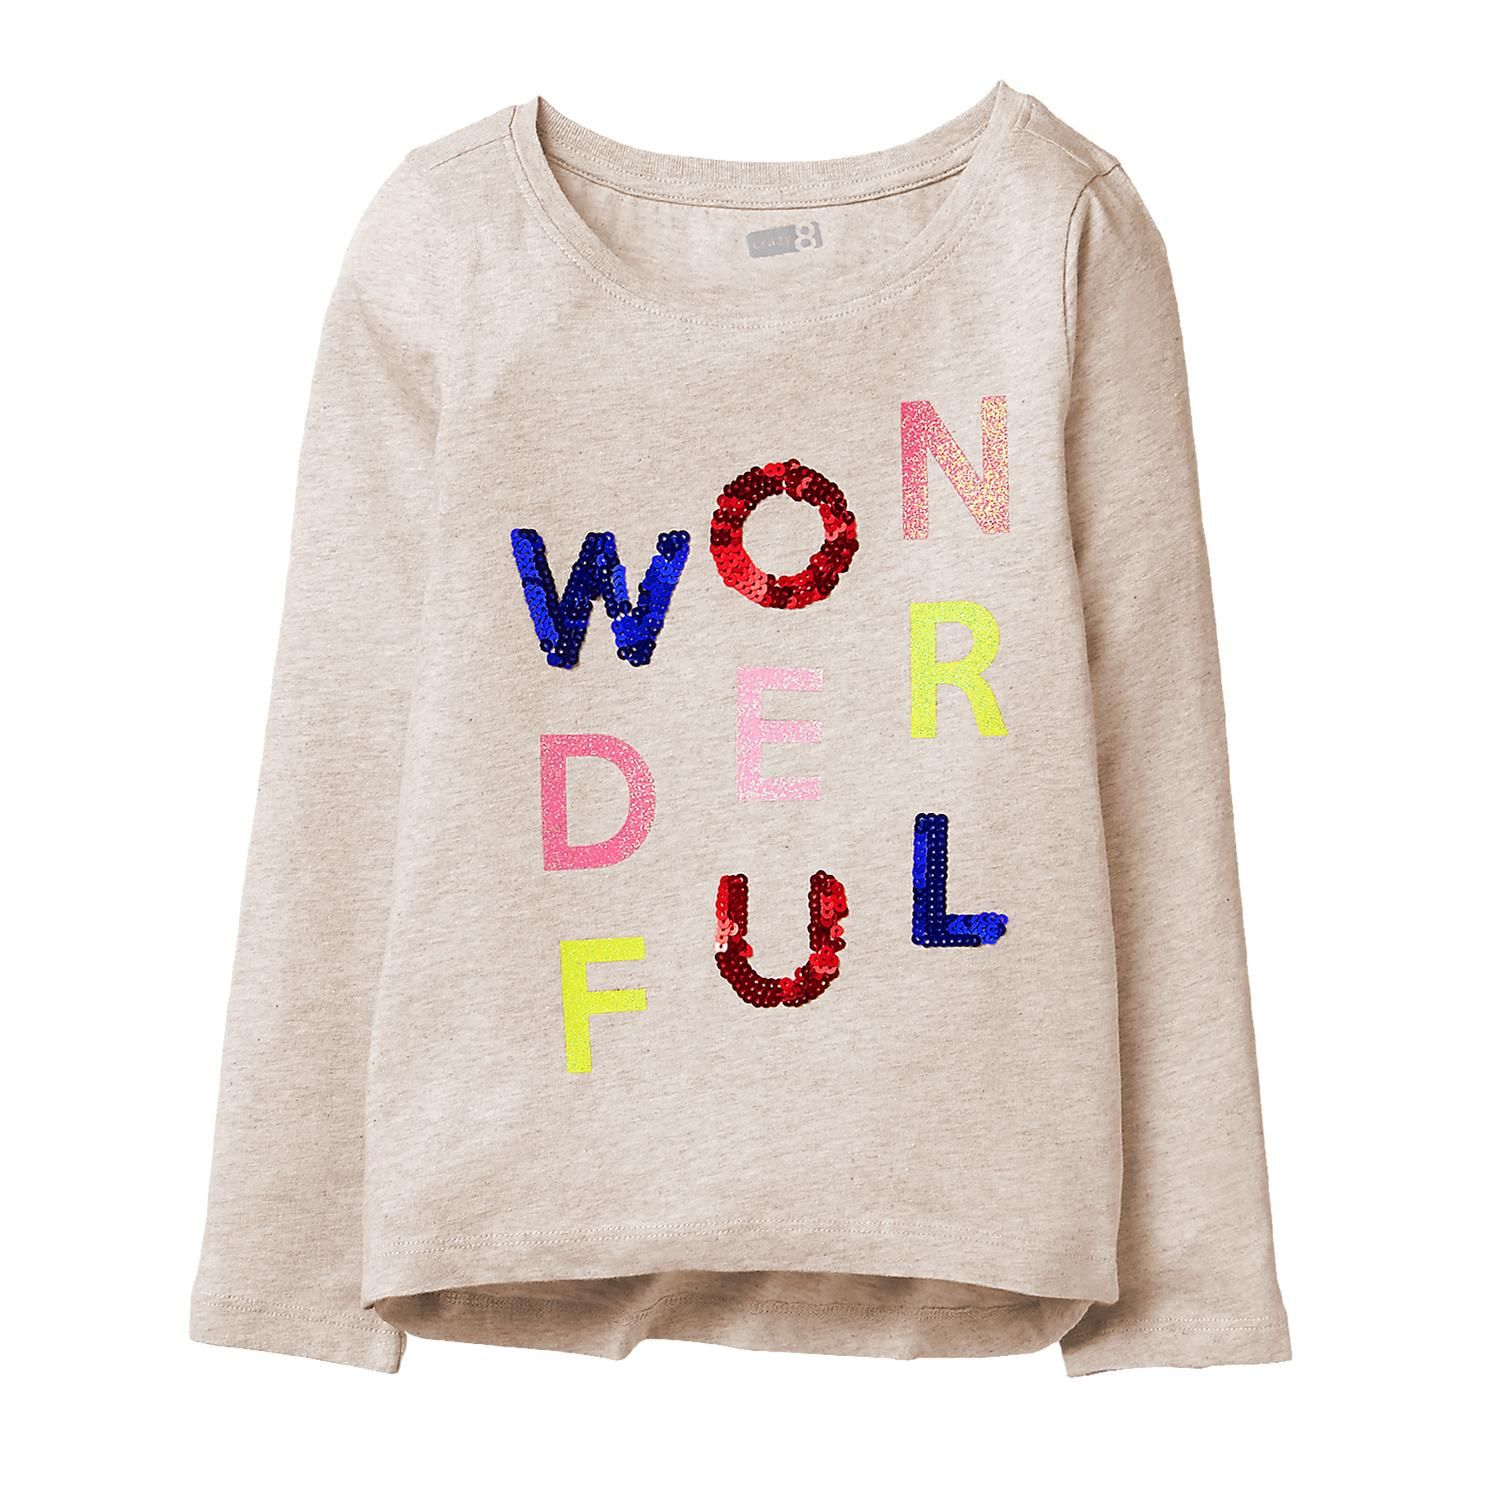 cb0d9553d9e3 Girl Heather Oatmeal Sparkle Wonderful Tee by Crazy 8 | Halle ...